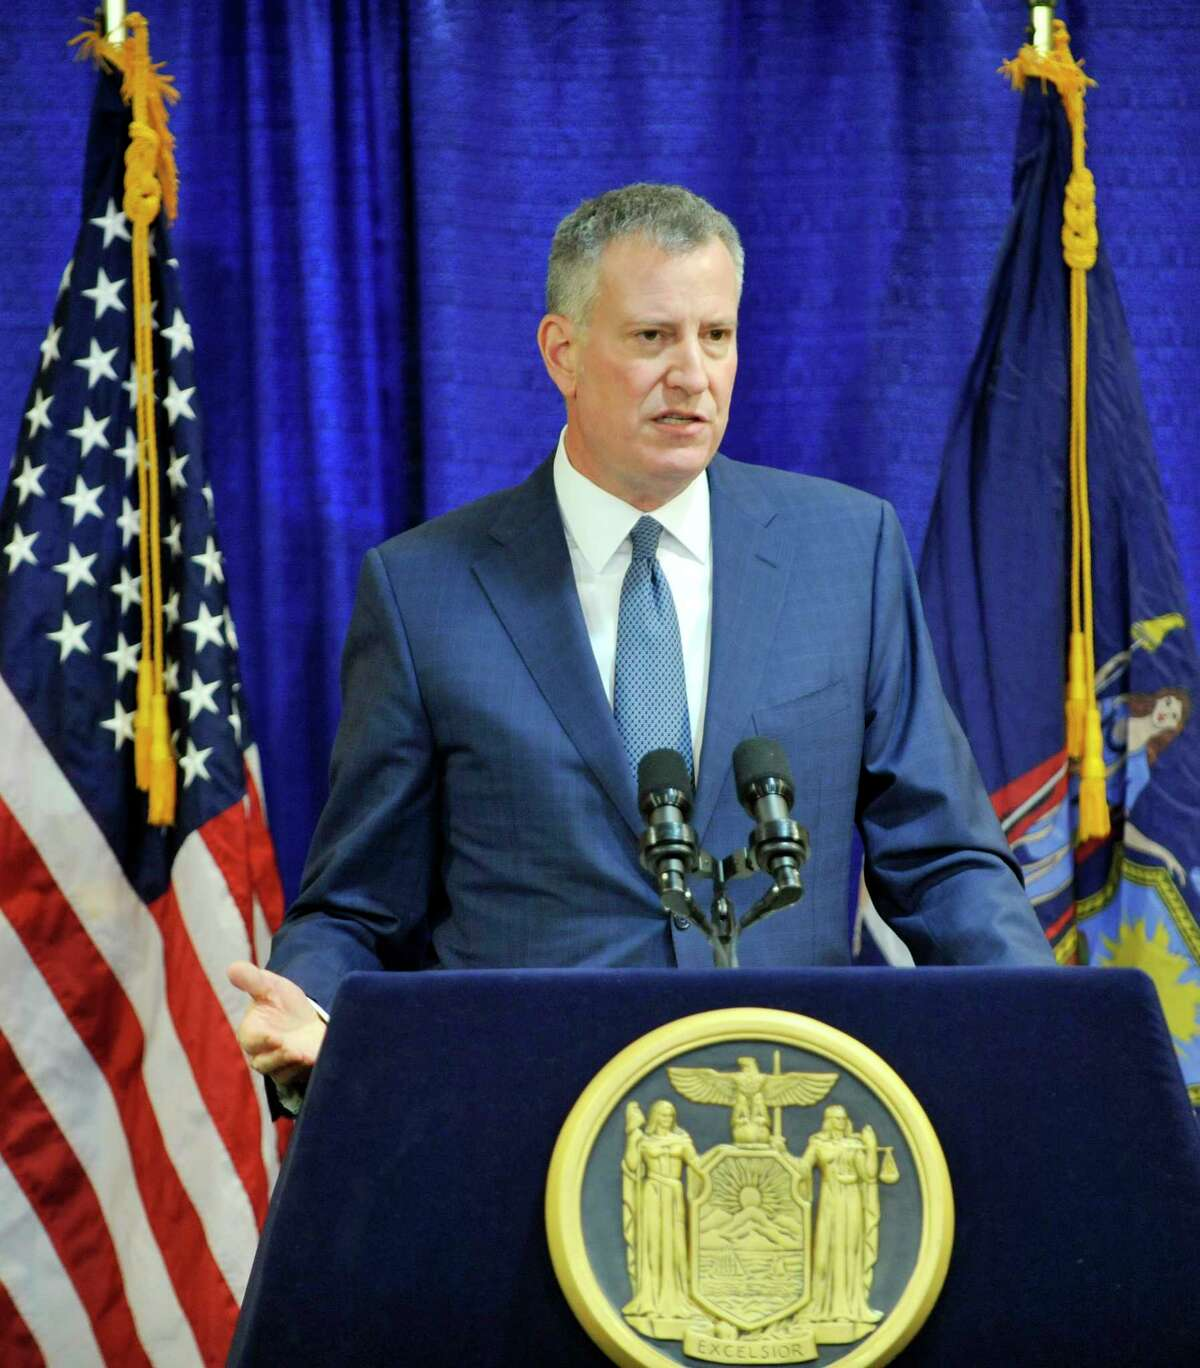 New York City Mayor Bill de Blasio talks to members of the media during a press conference following Governor Andrew Cuomo's State of the State address on Wednesday, Jan. 13, 2016, in Albany, N.Y. (Paul Buckowski / Times Union)